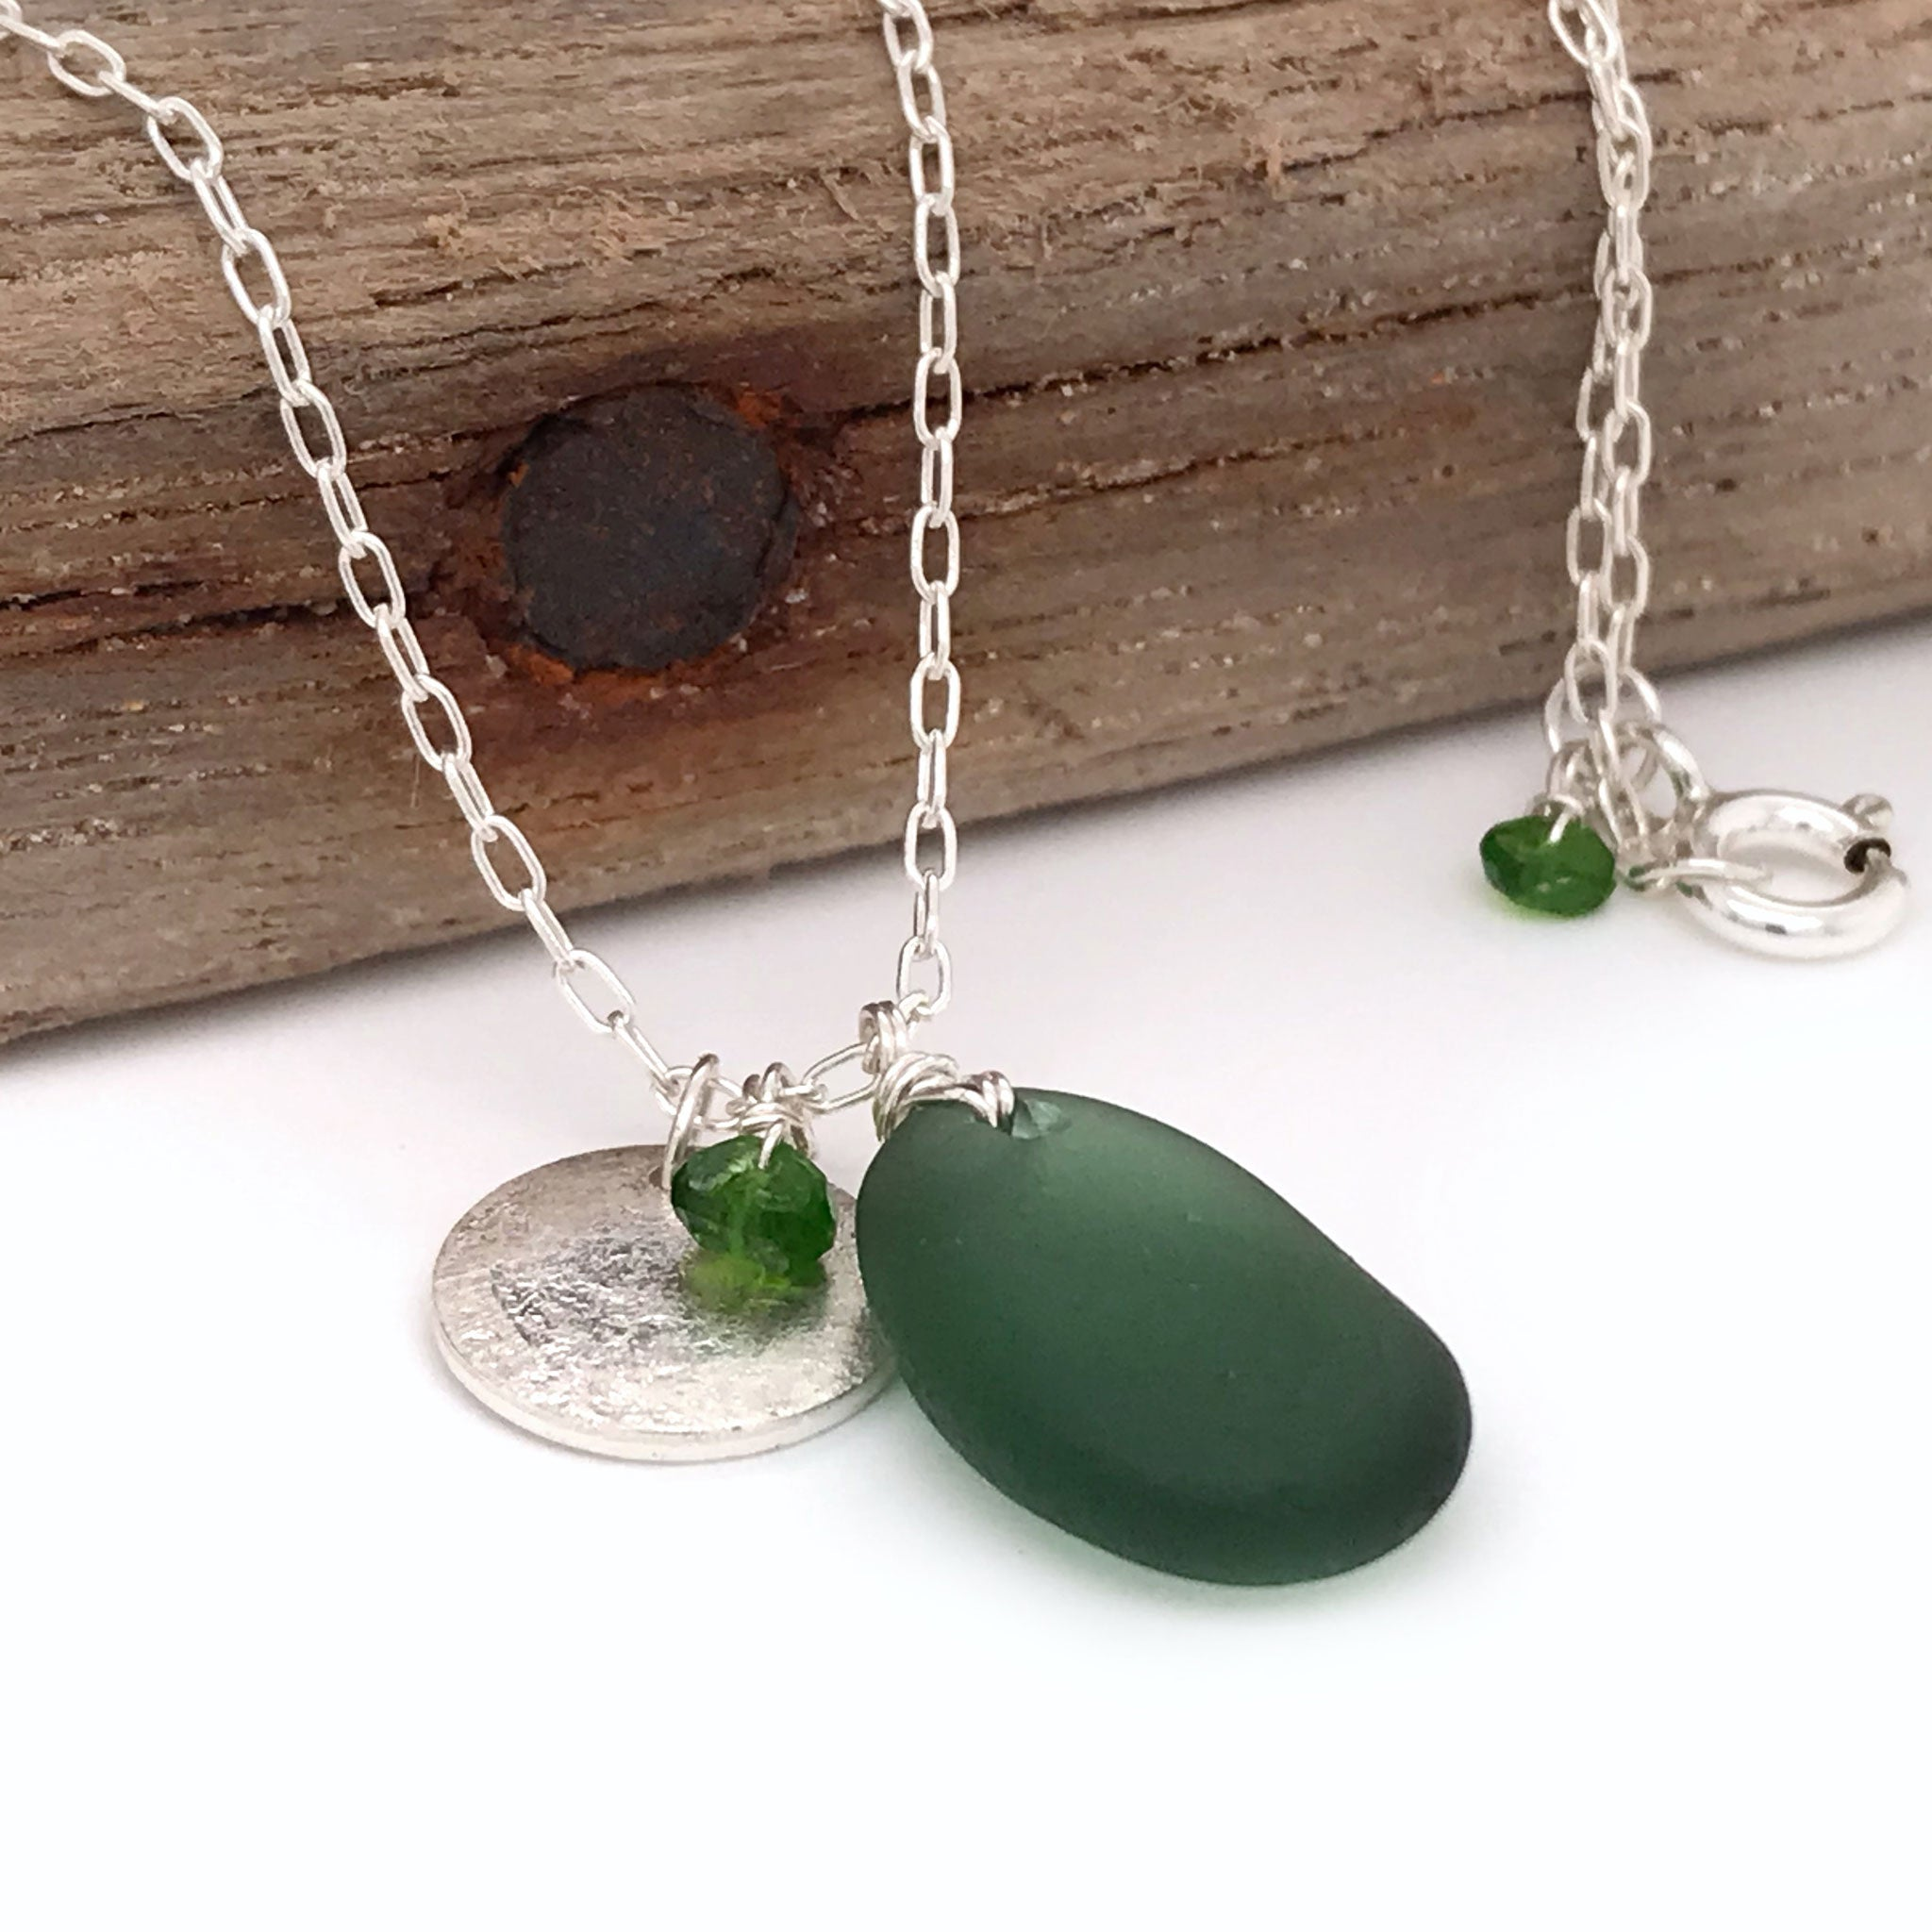 sterling silver disc necklace with green seaglass and tsavorite stones kriket Broadhurst jewellery